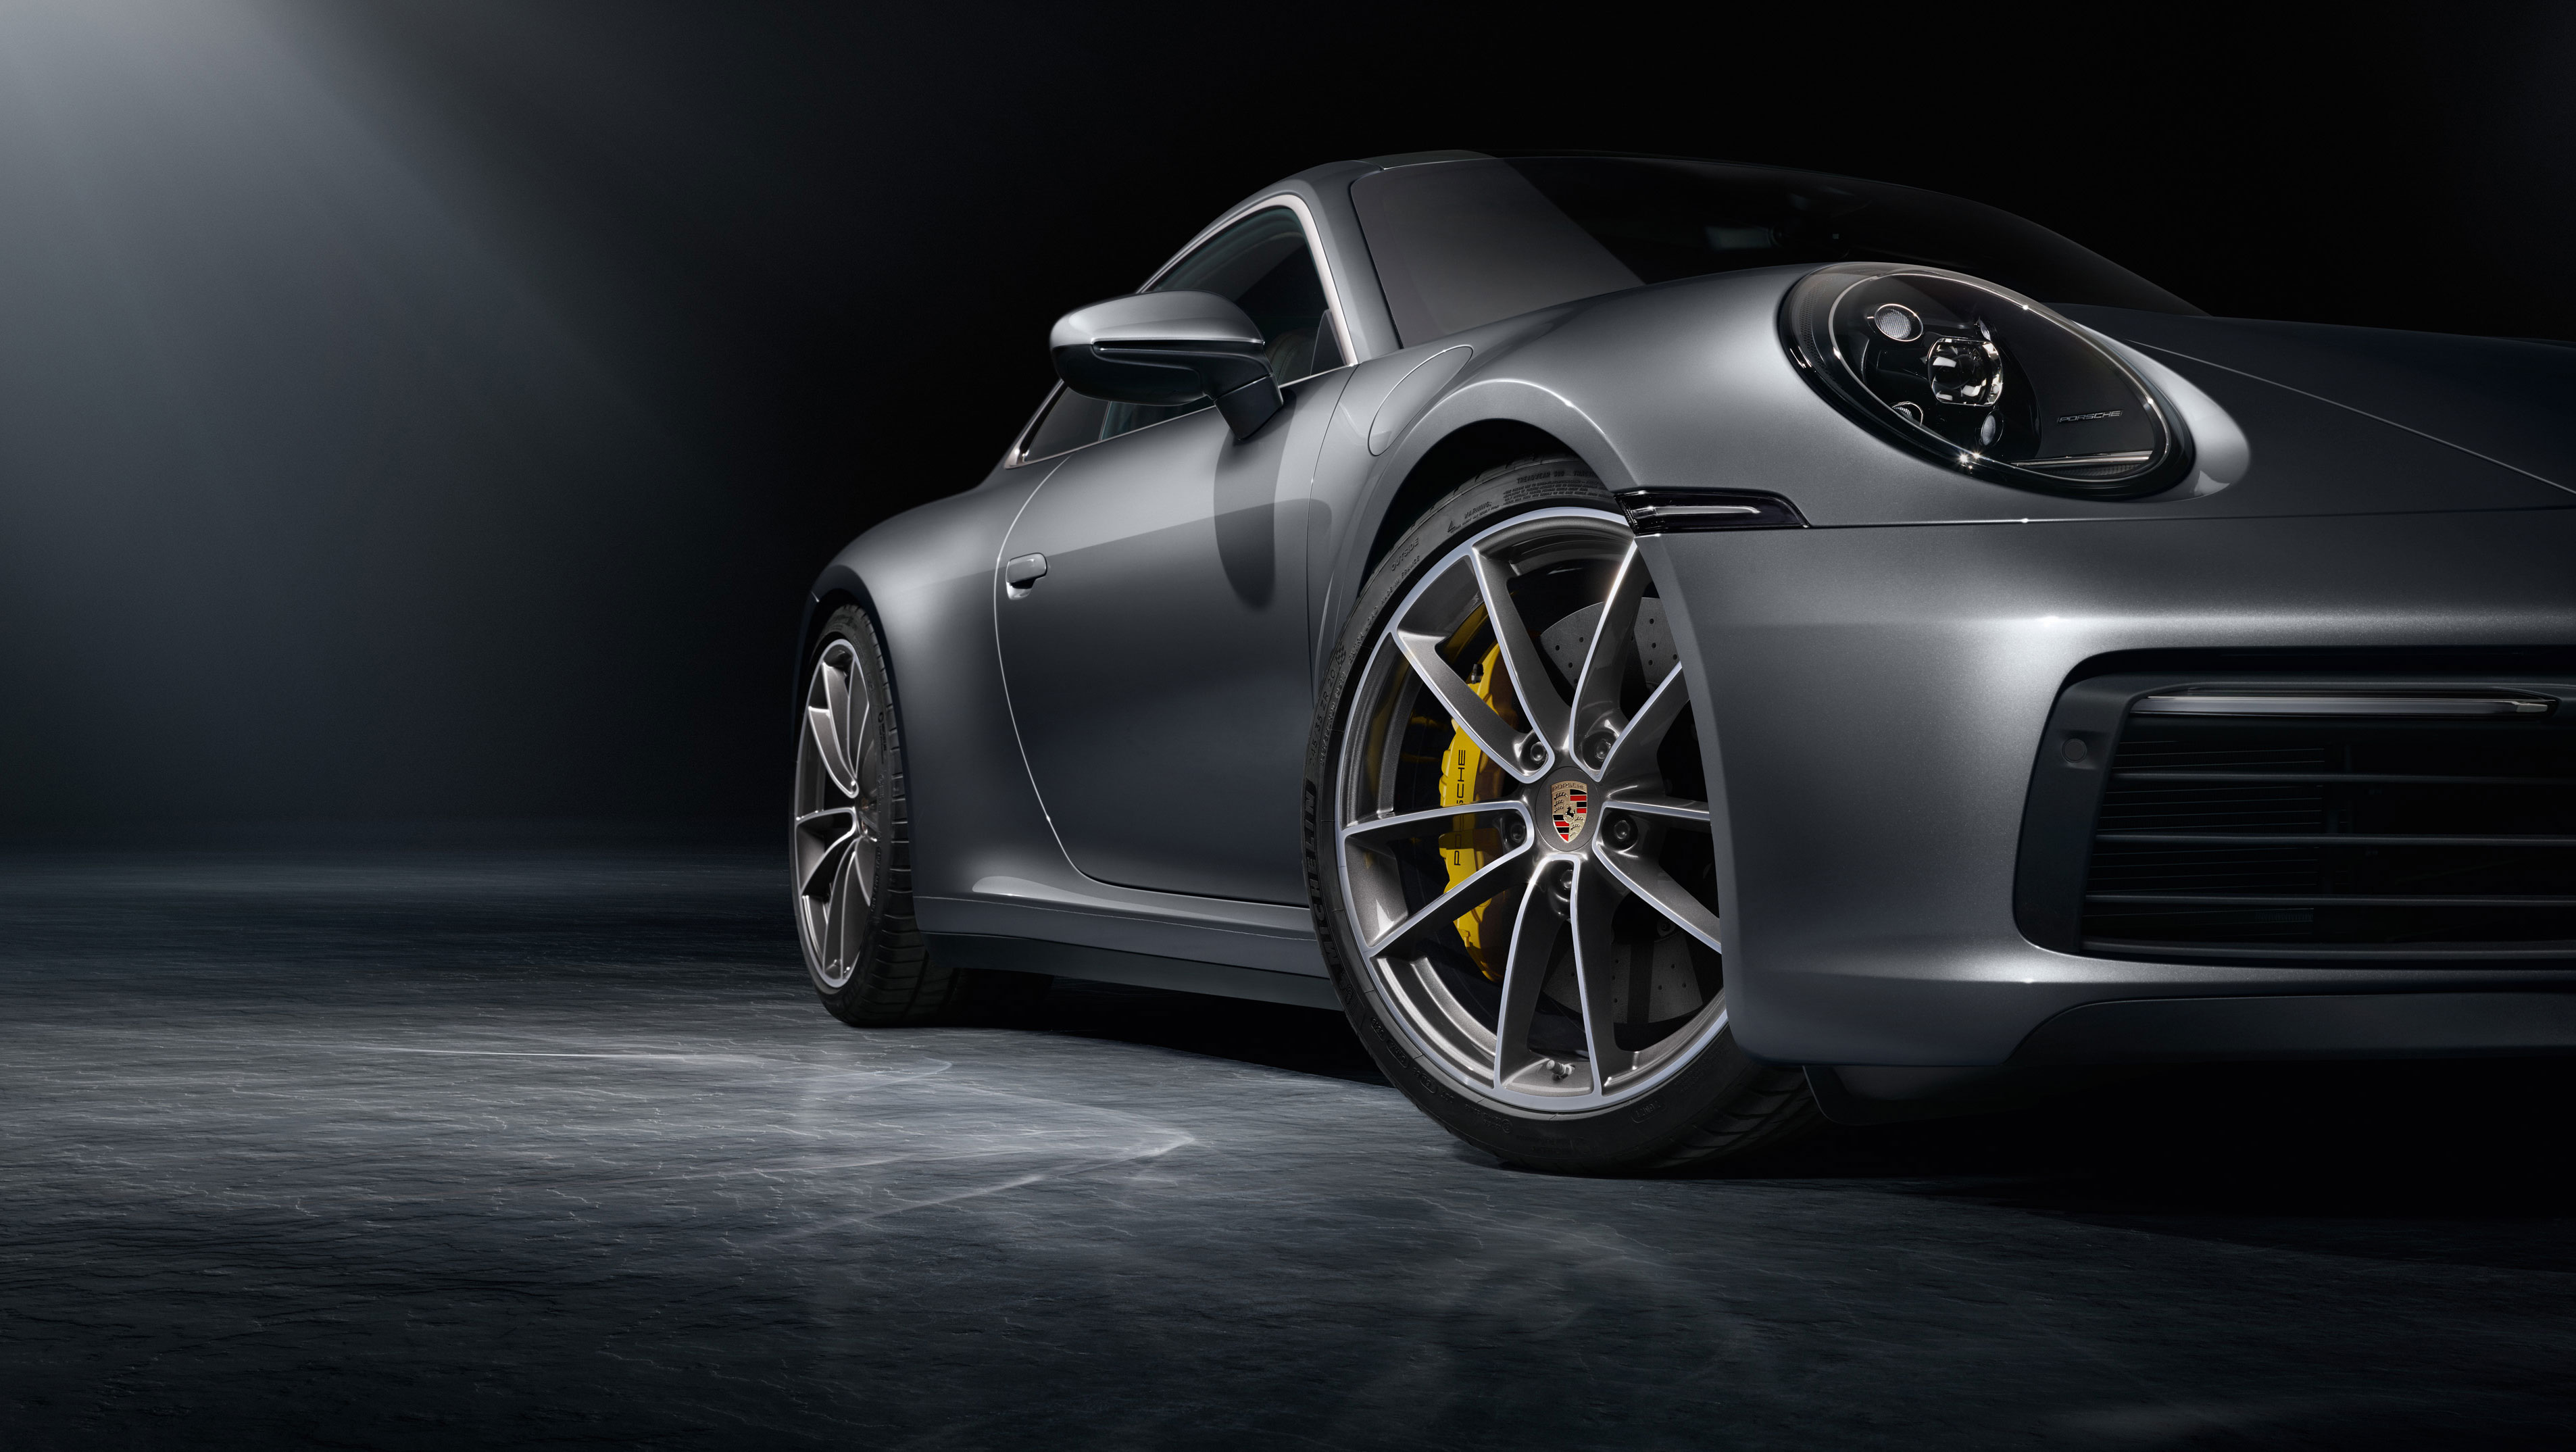 The 992 is an Evolution of the Porsche 911